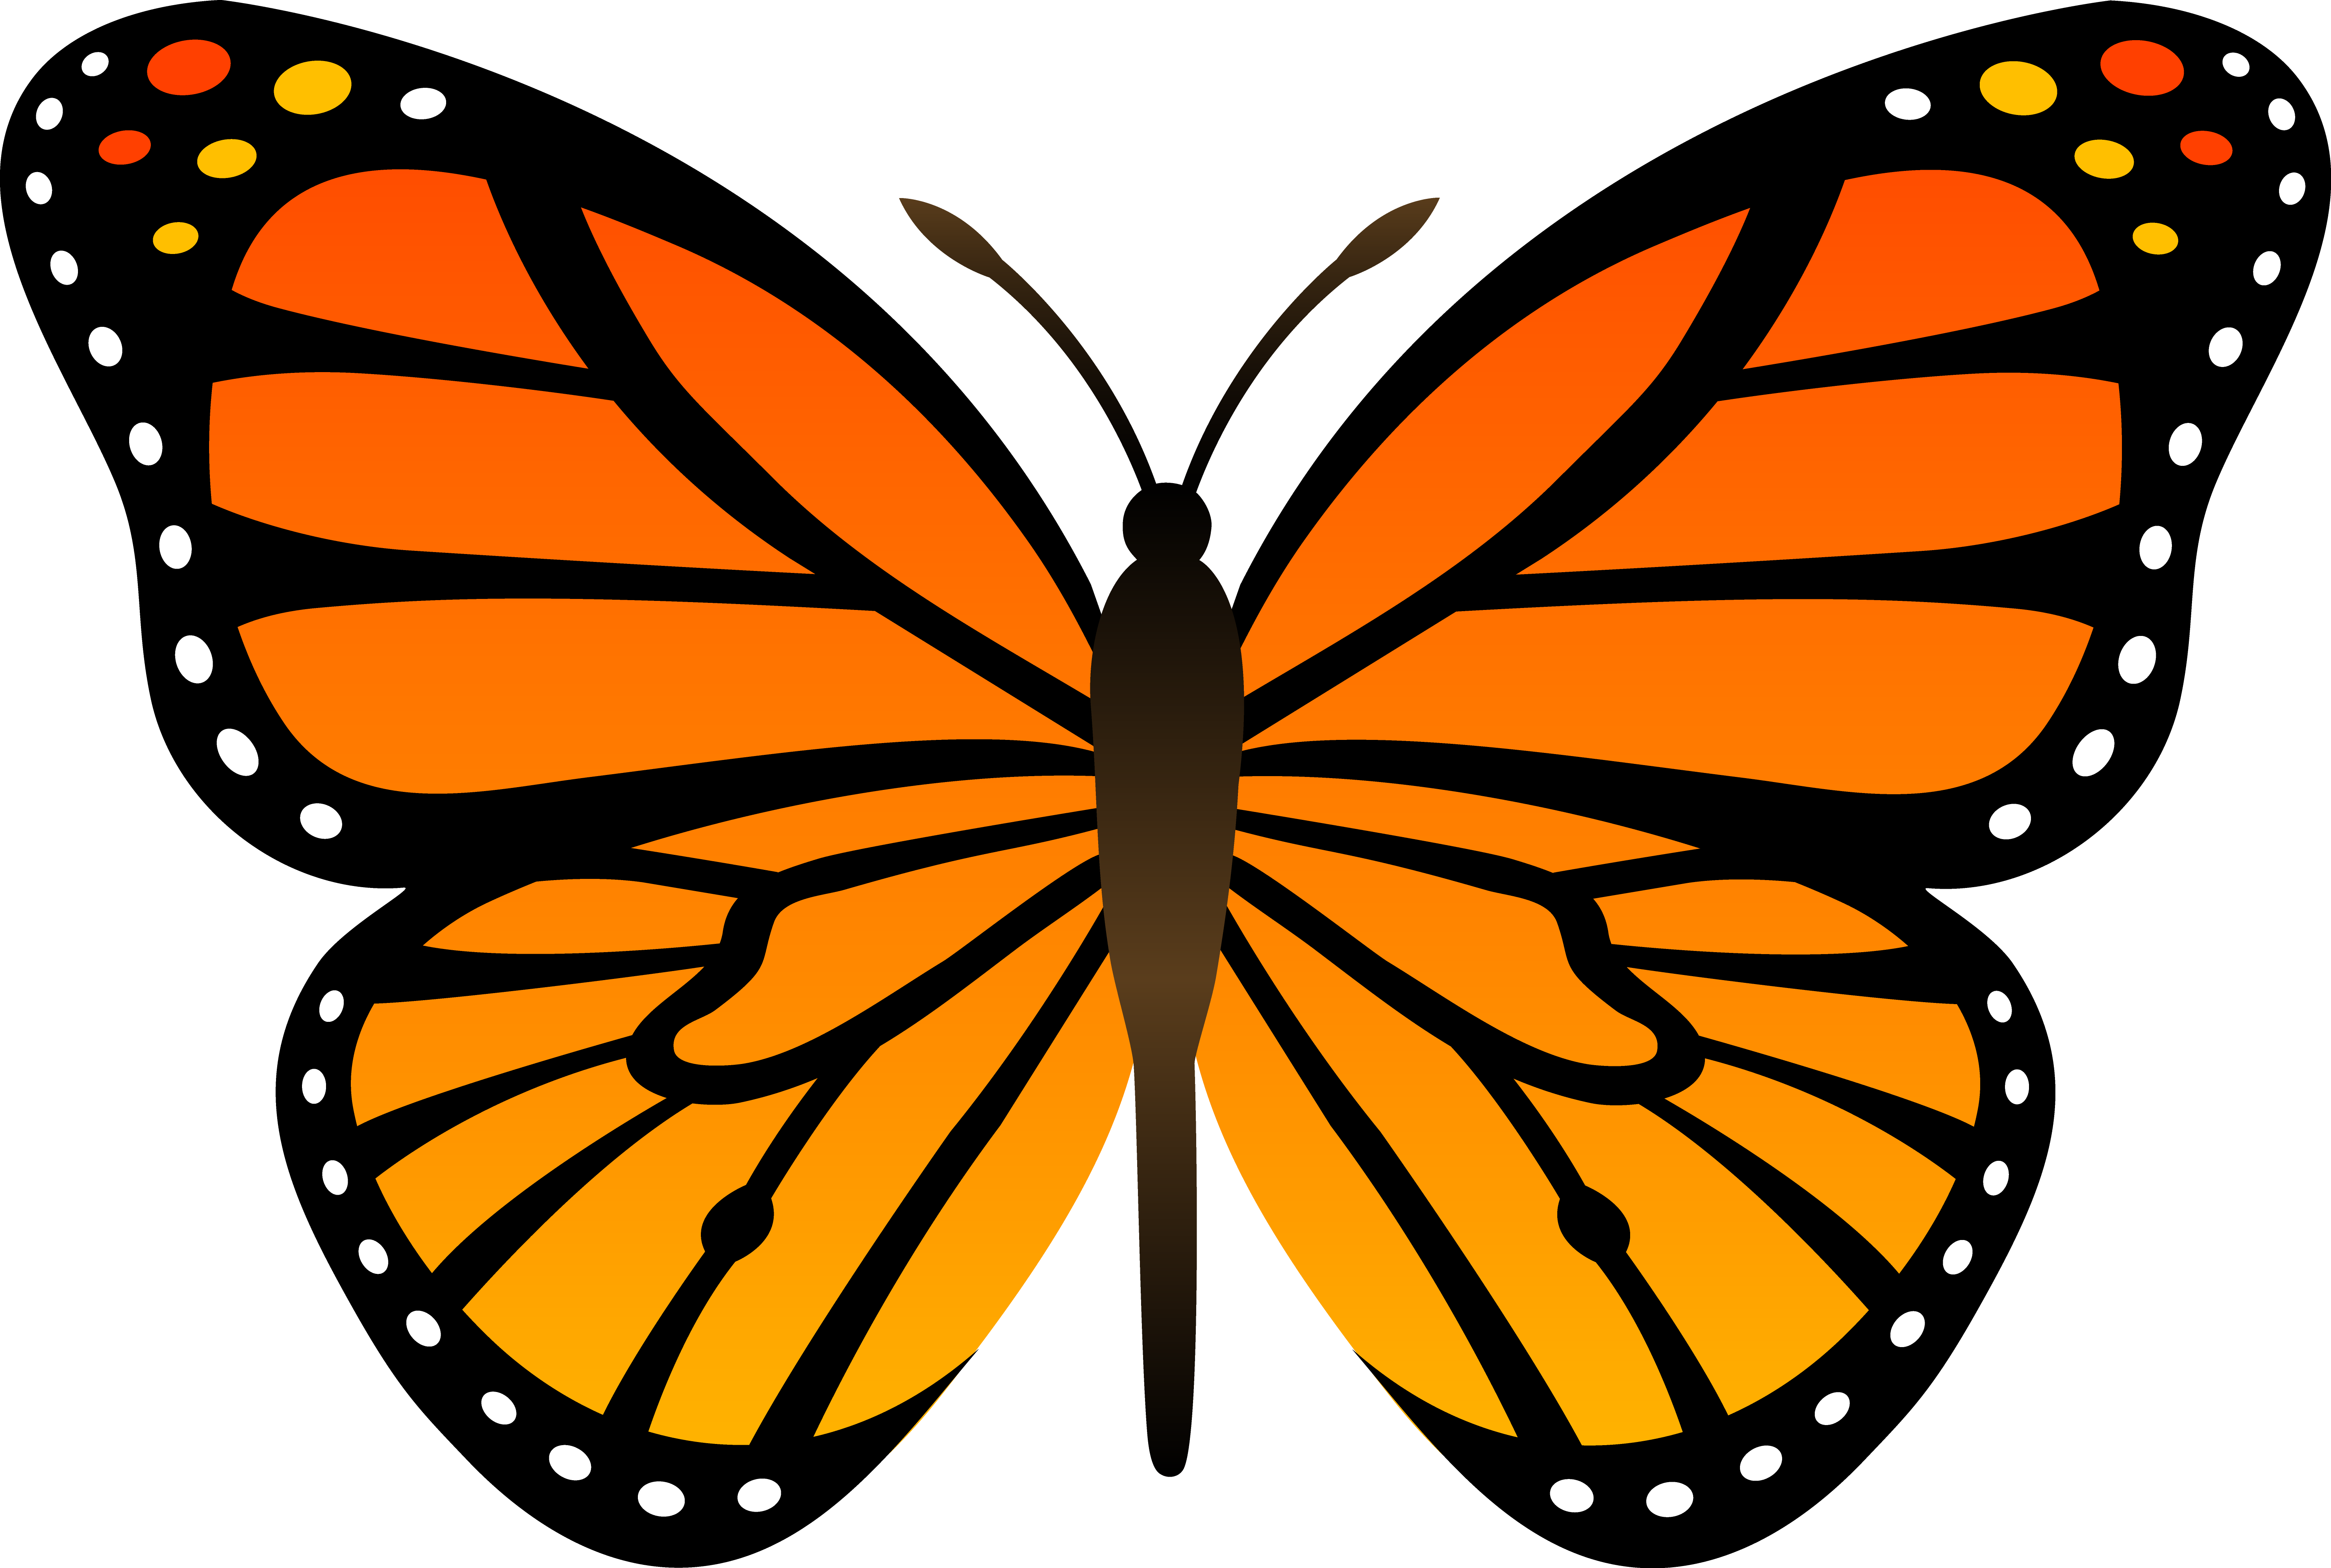 Butterfly clip art small butterfly. Orange bedroom designs easy